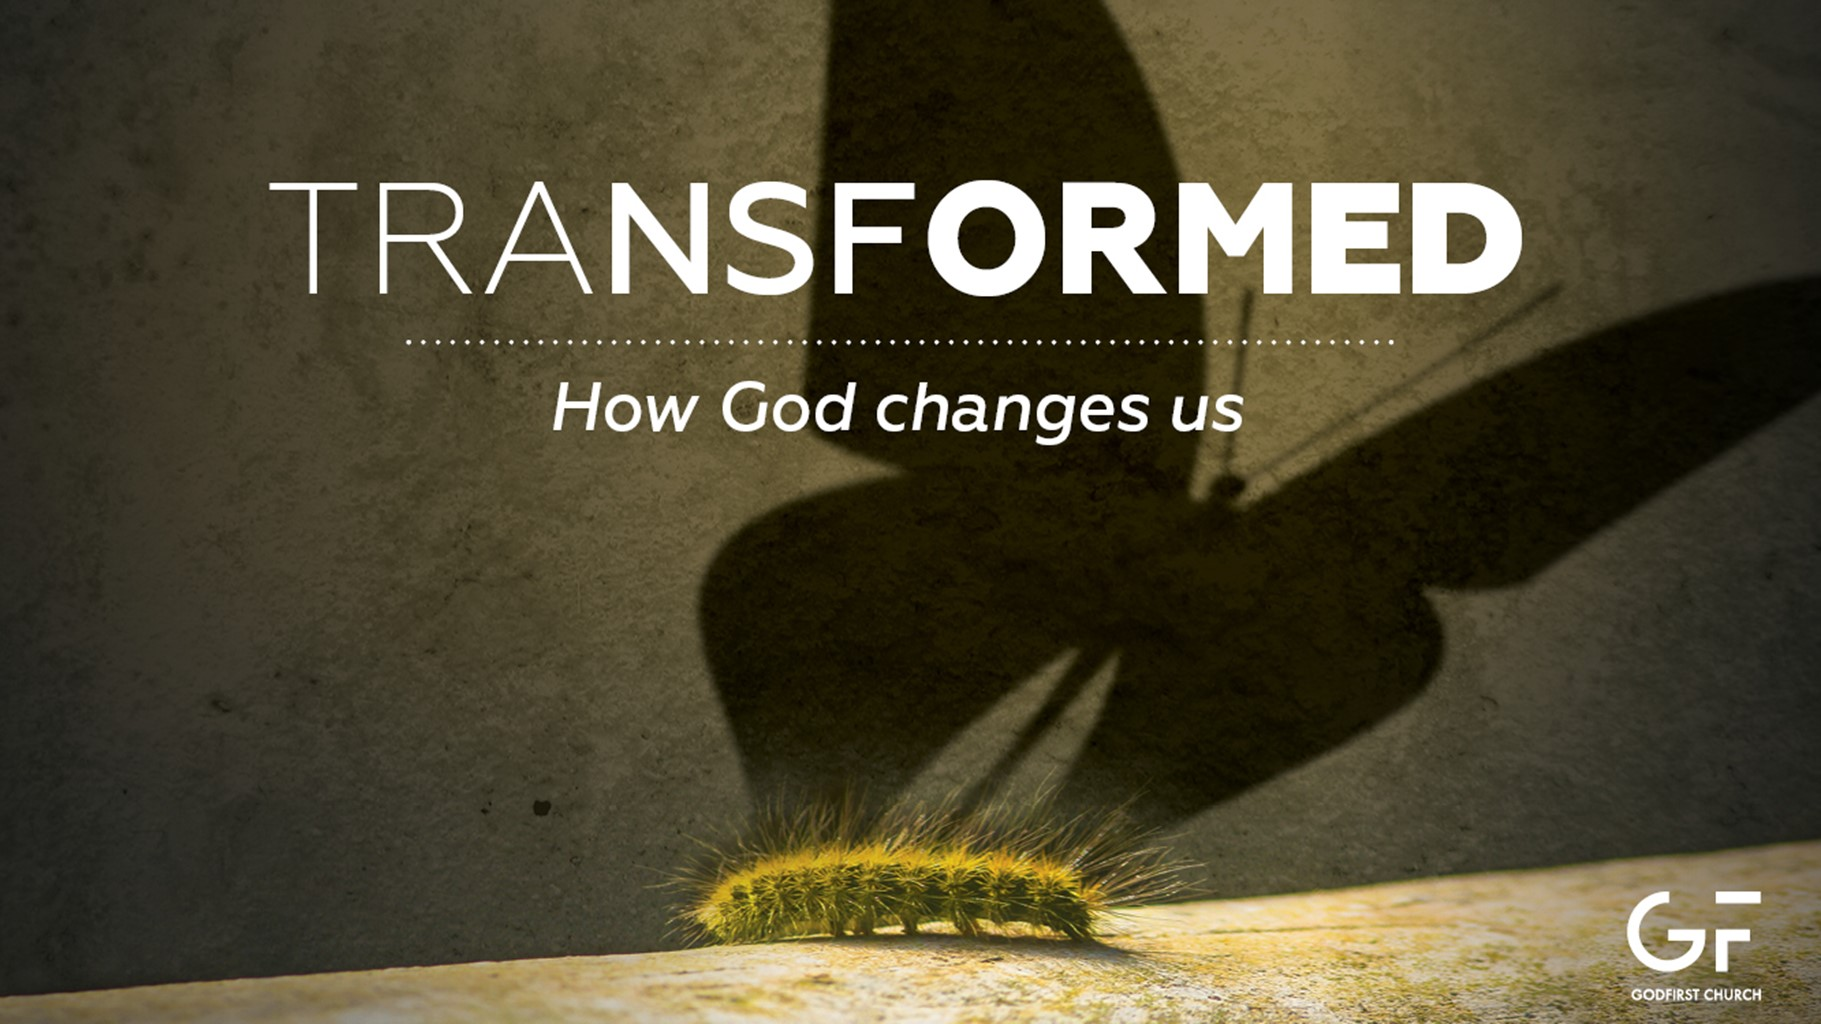 In this series we will look at how following Jesus transforms us in seven different areas of life. Namely: Spiritual, physical, mental, emotional, relational, financial and vocational